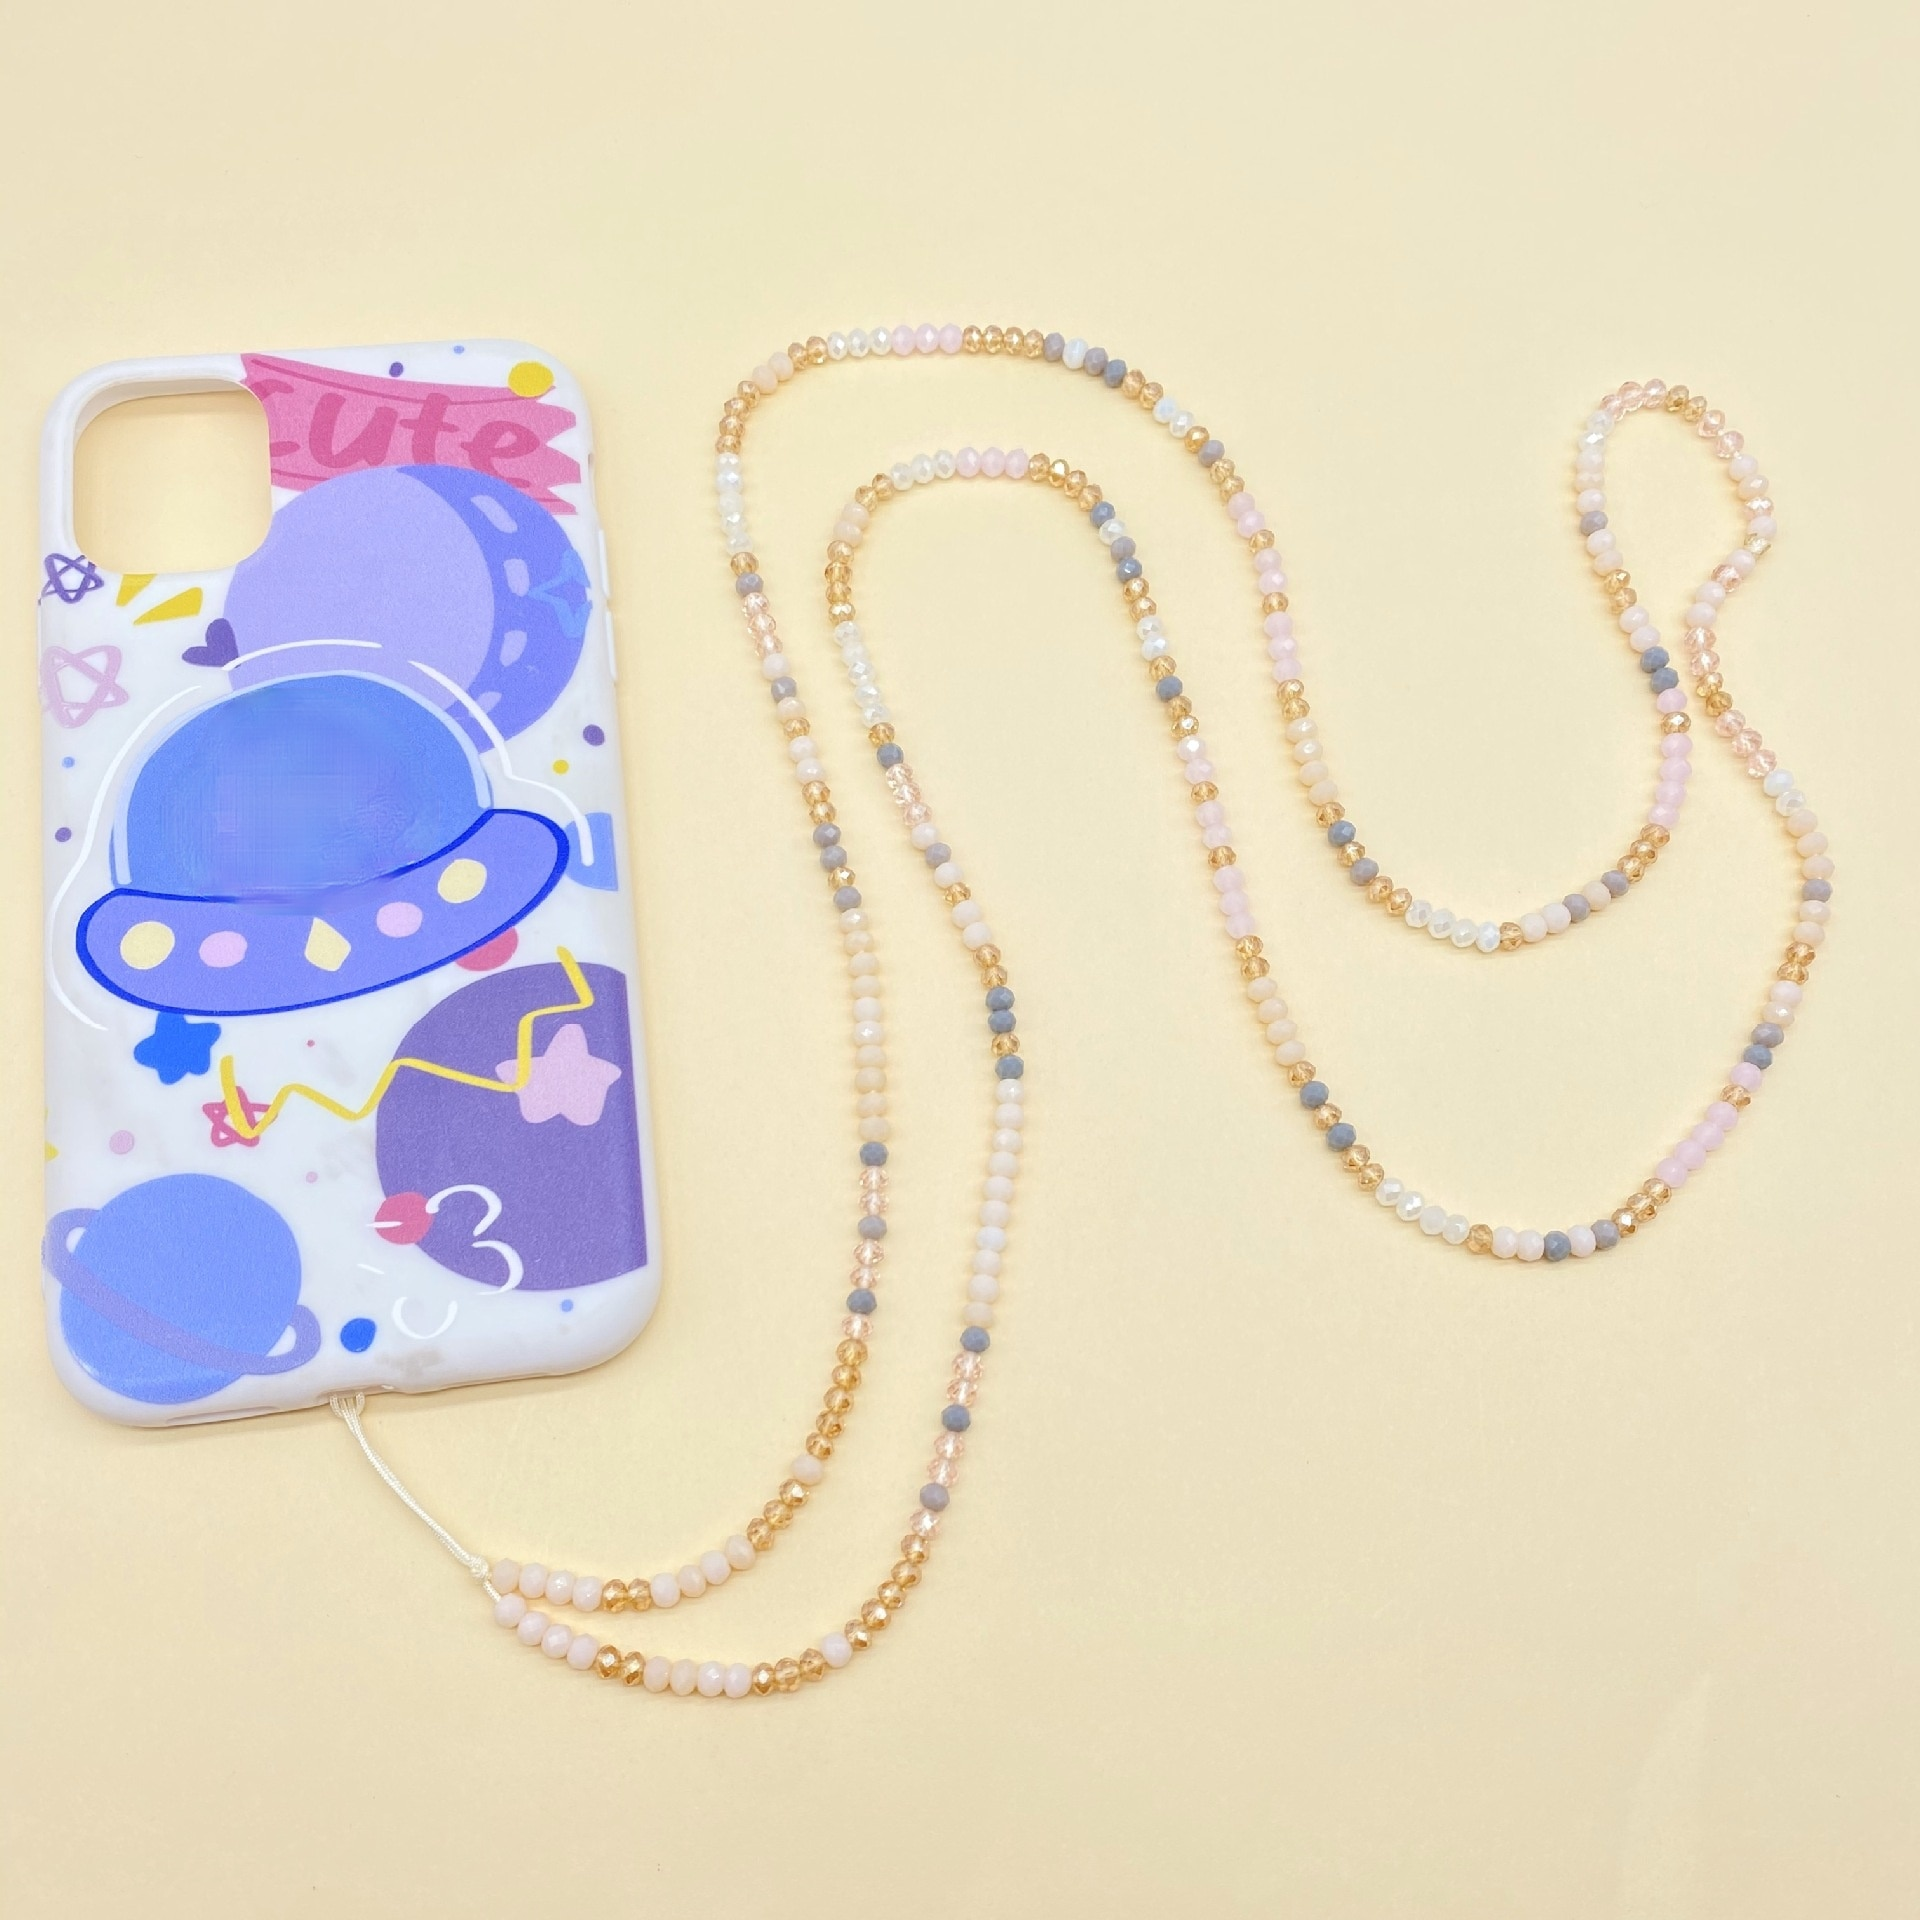 Colorful Acrylic Crystal Lanyard Mobile Phone Chain Women Accessories 2021 Chains for Jewelry Phone Strap